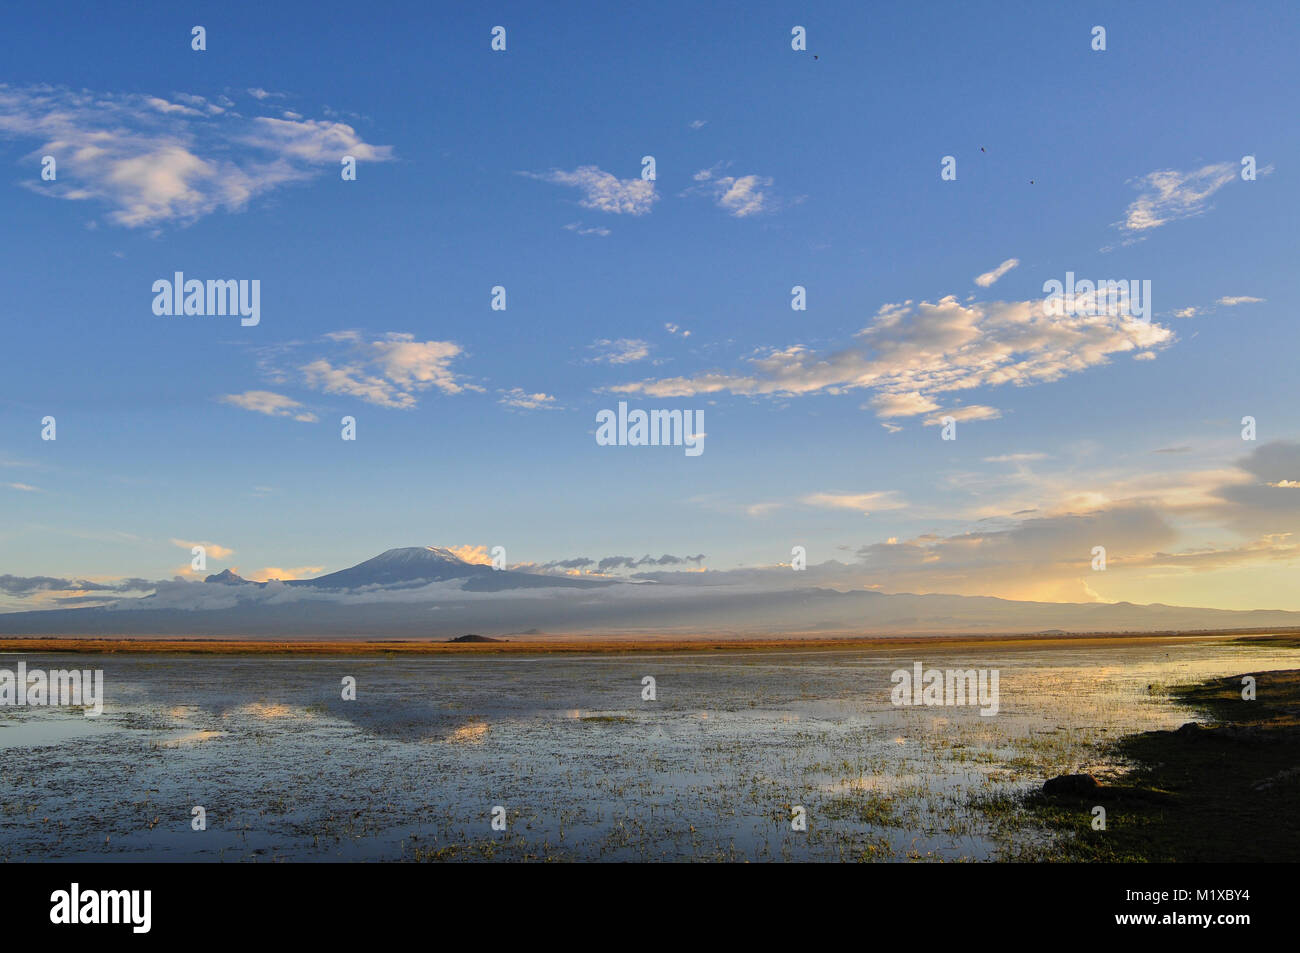 Wide angle view of lake in Amboseli National Park towards sunset with Kilimanjaro in the background. - Stock Image